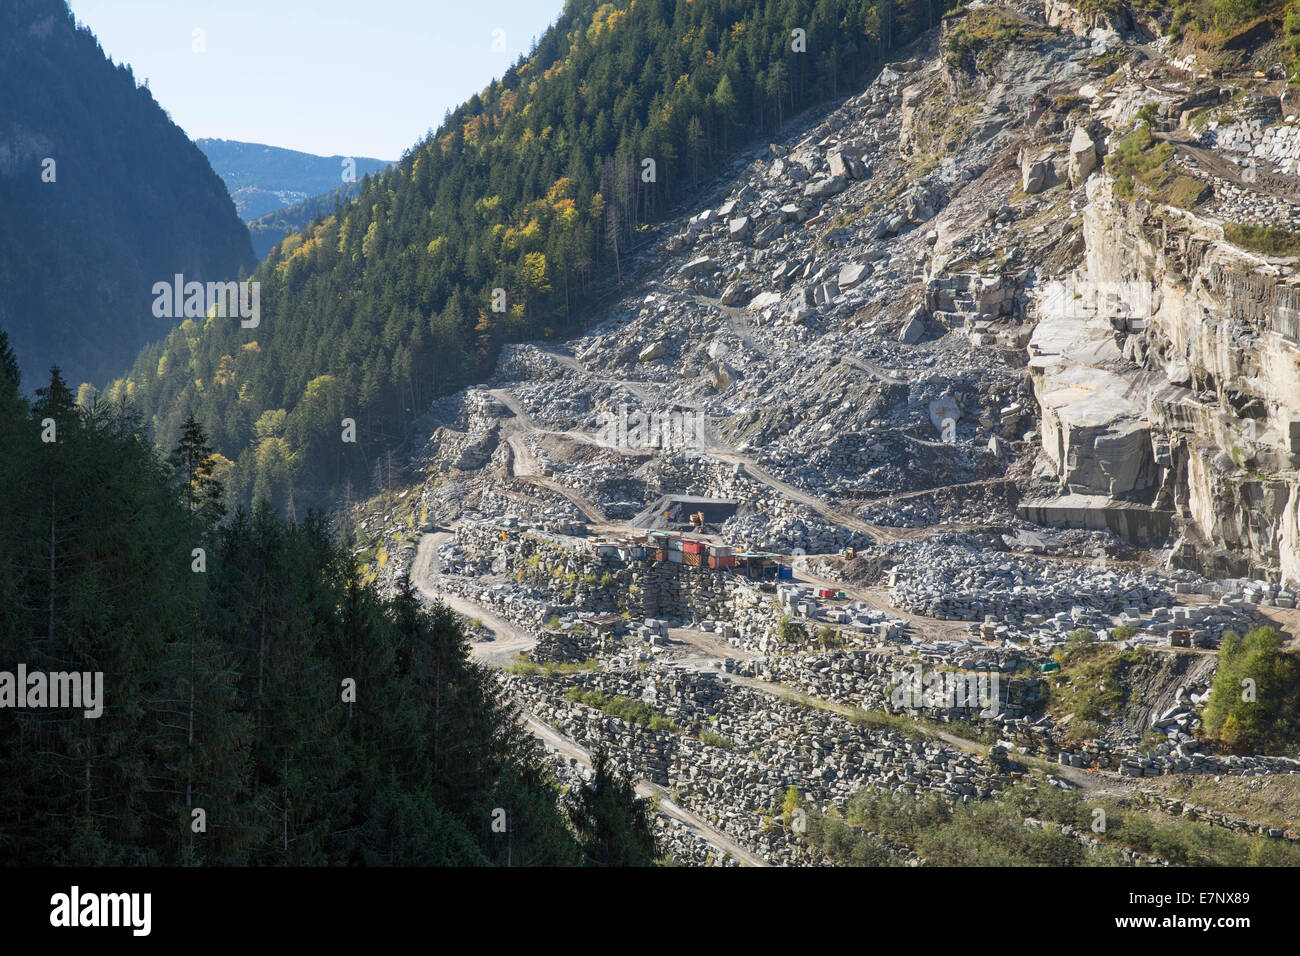 Calanca valley, stone quarry, Arvigo, Calanca valley, autumn, mountain, mountains, canton, GR, Graubünden, - Stock Image